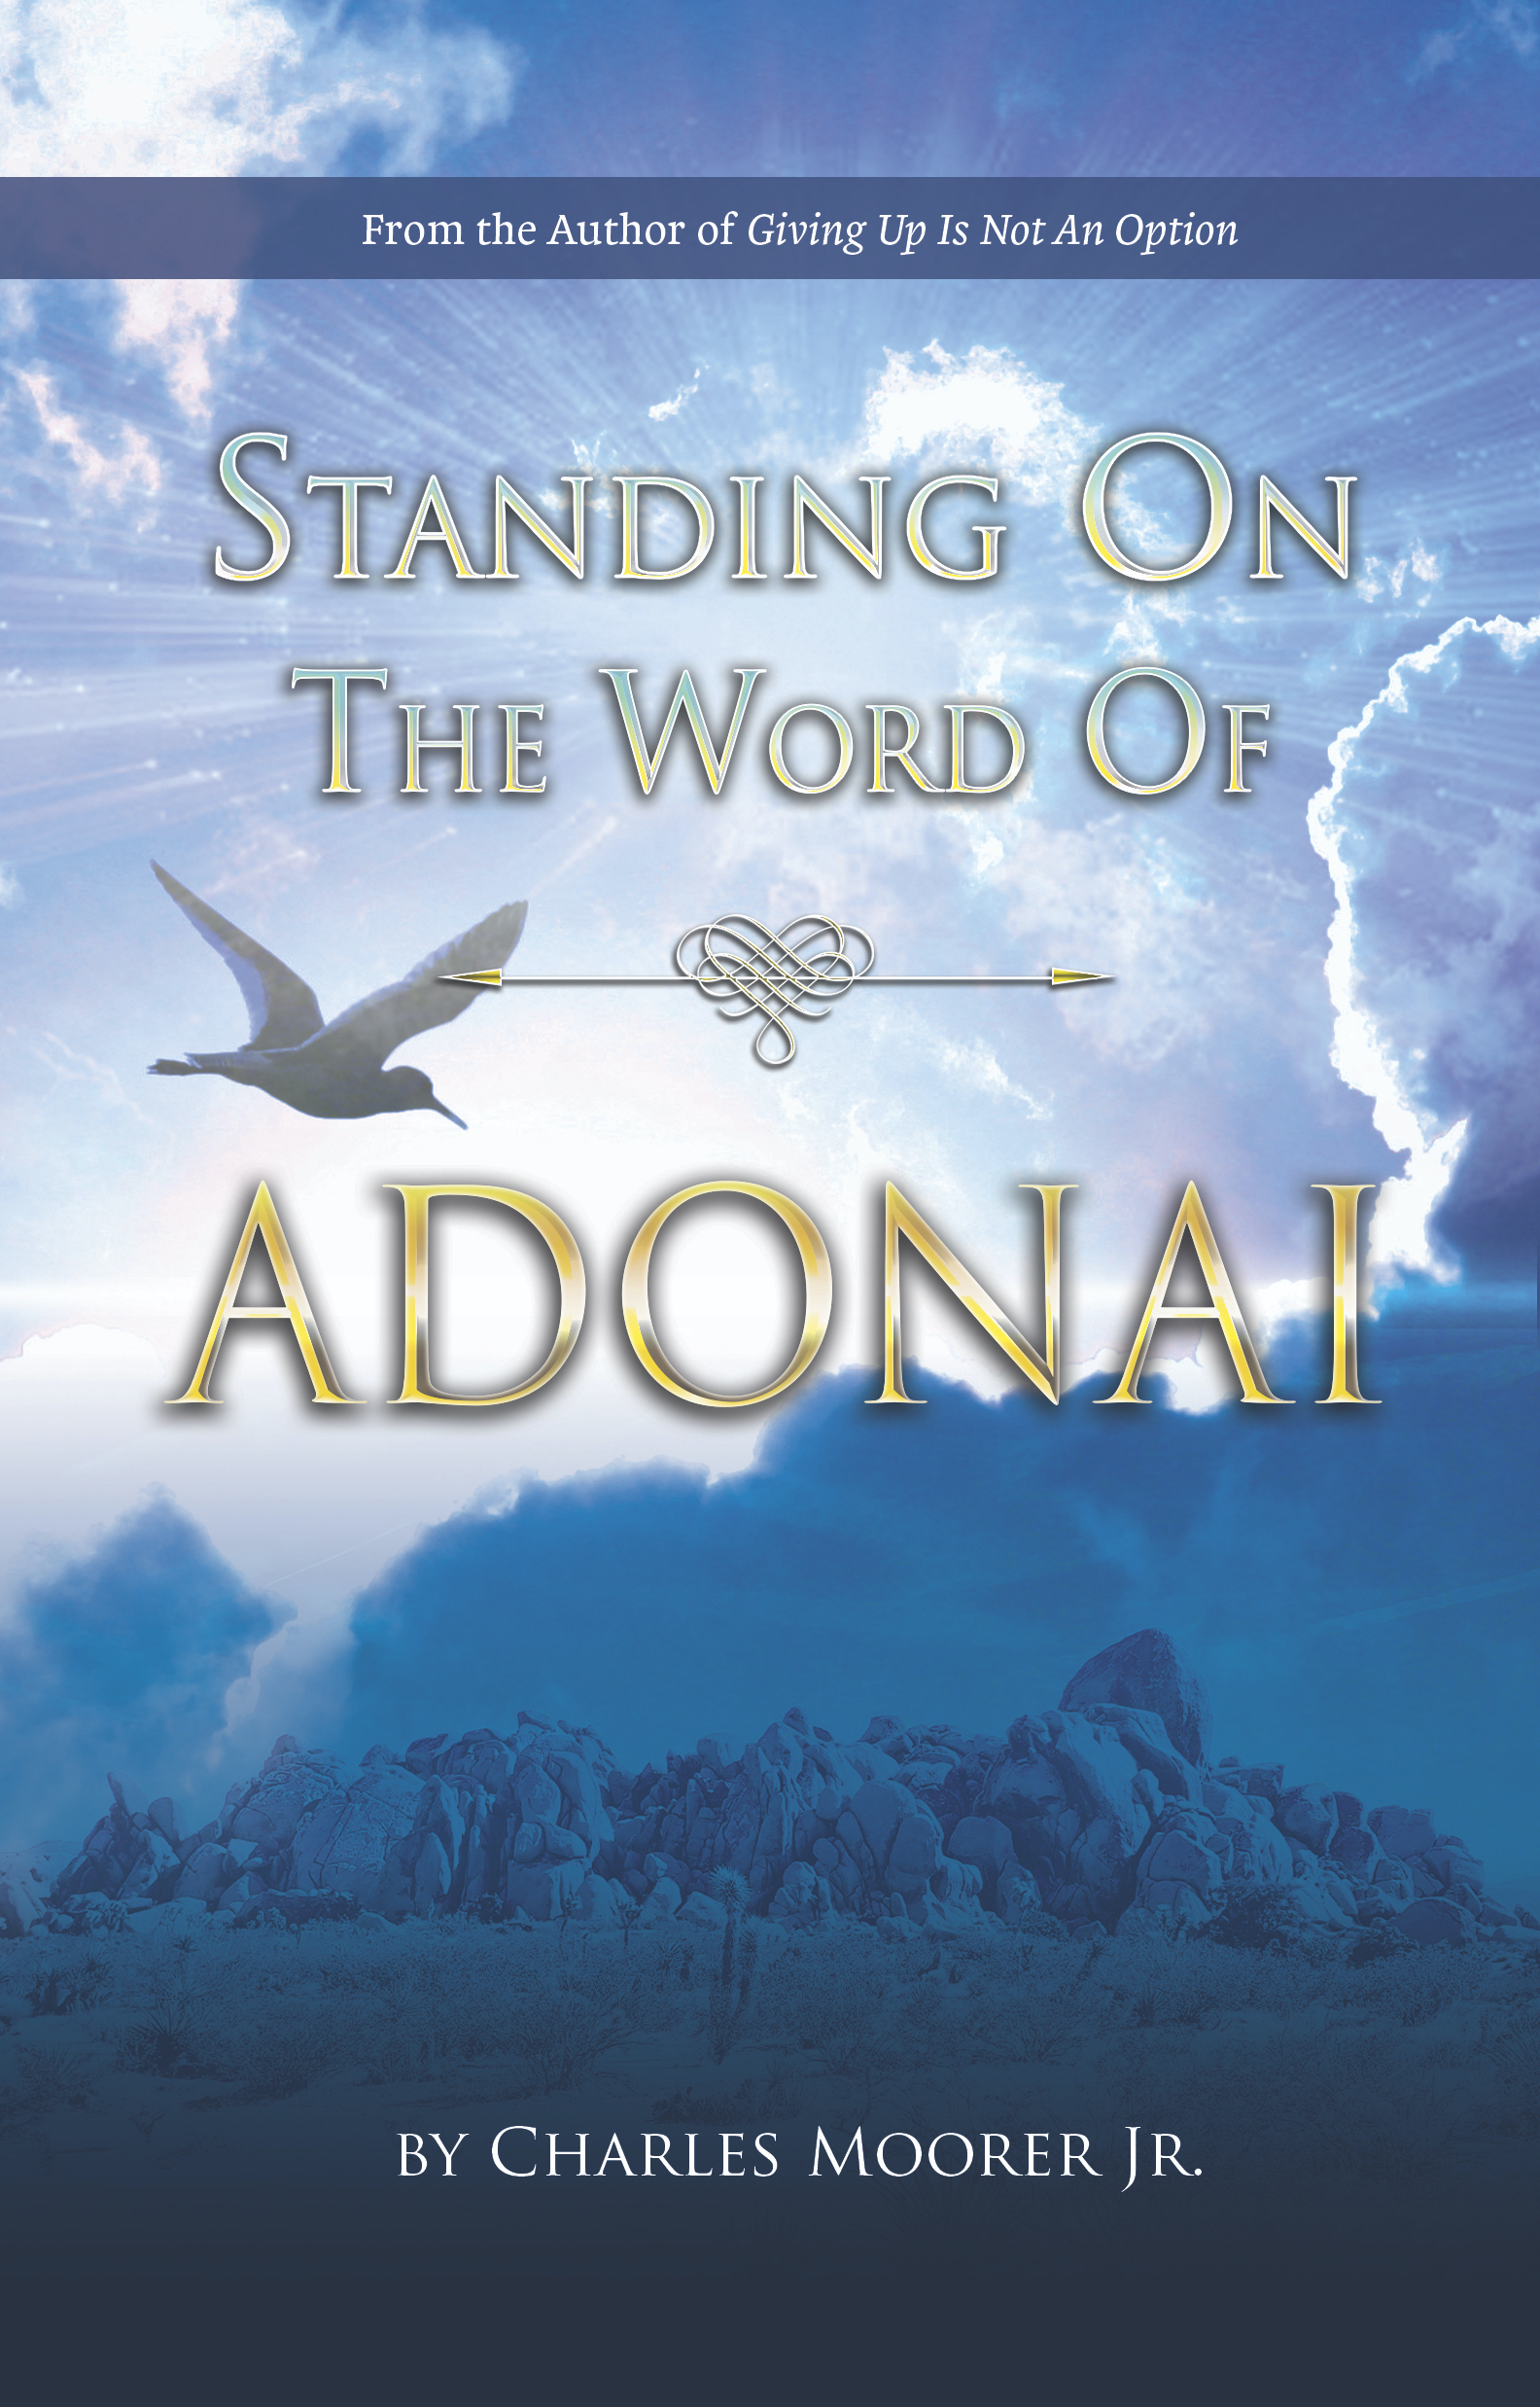 Author Charles Moorer releases new book, Standing on the Word of Adonai